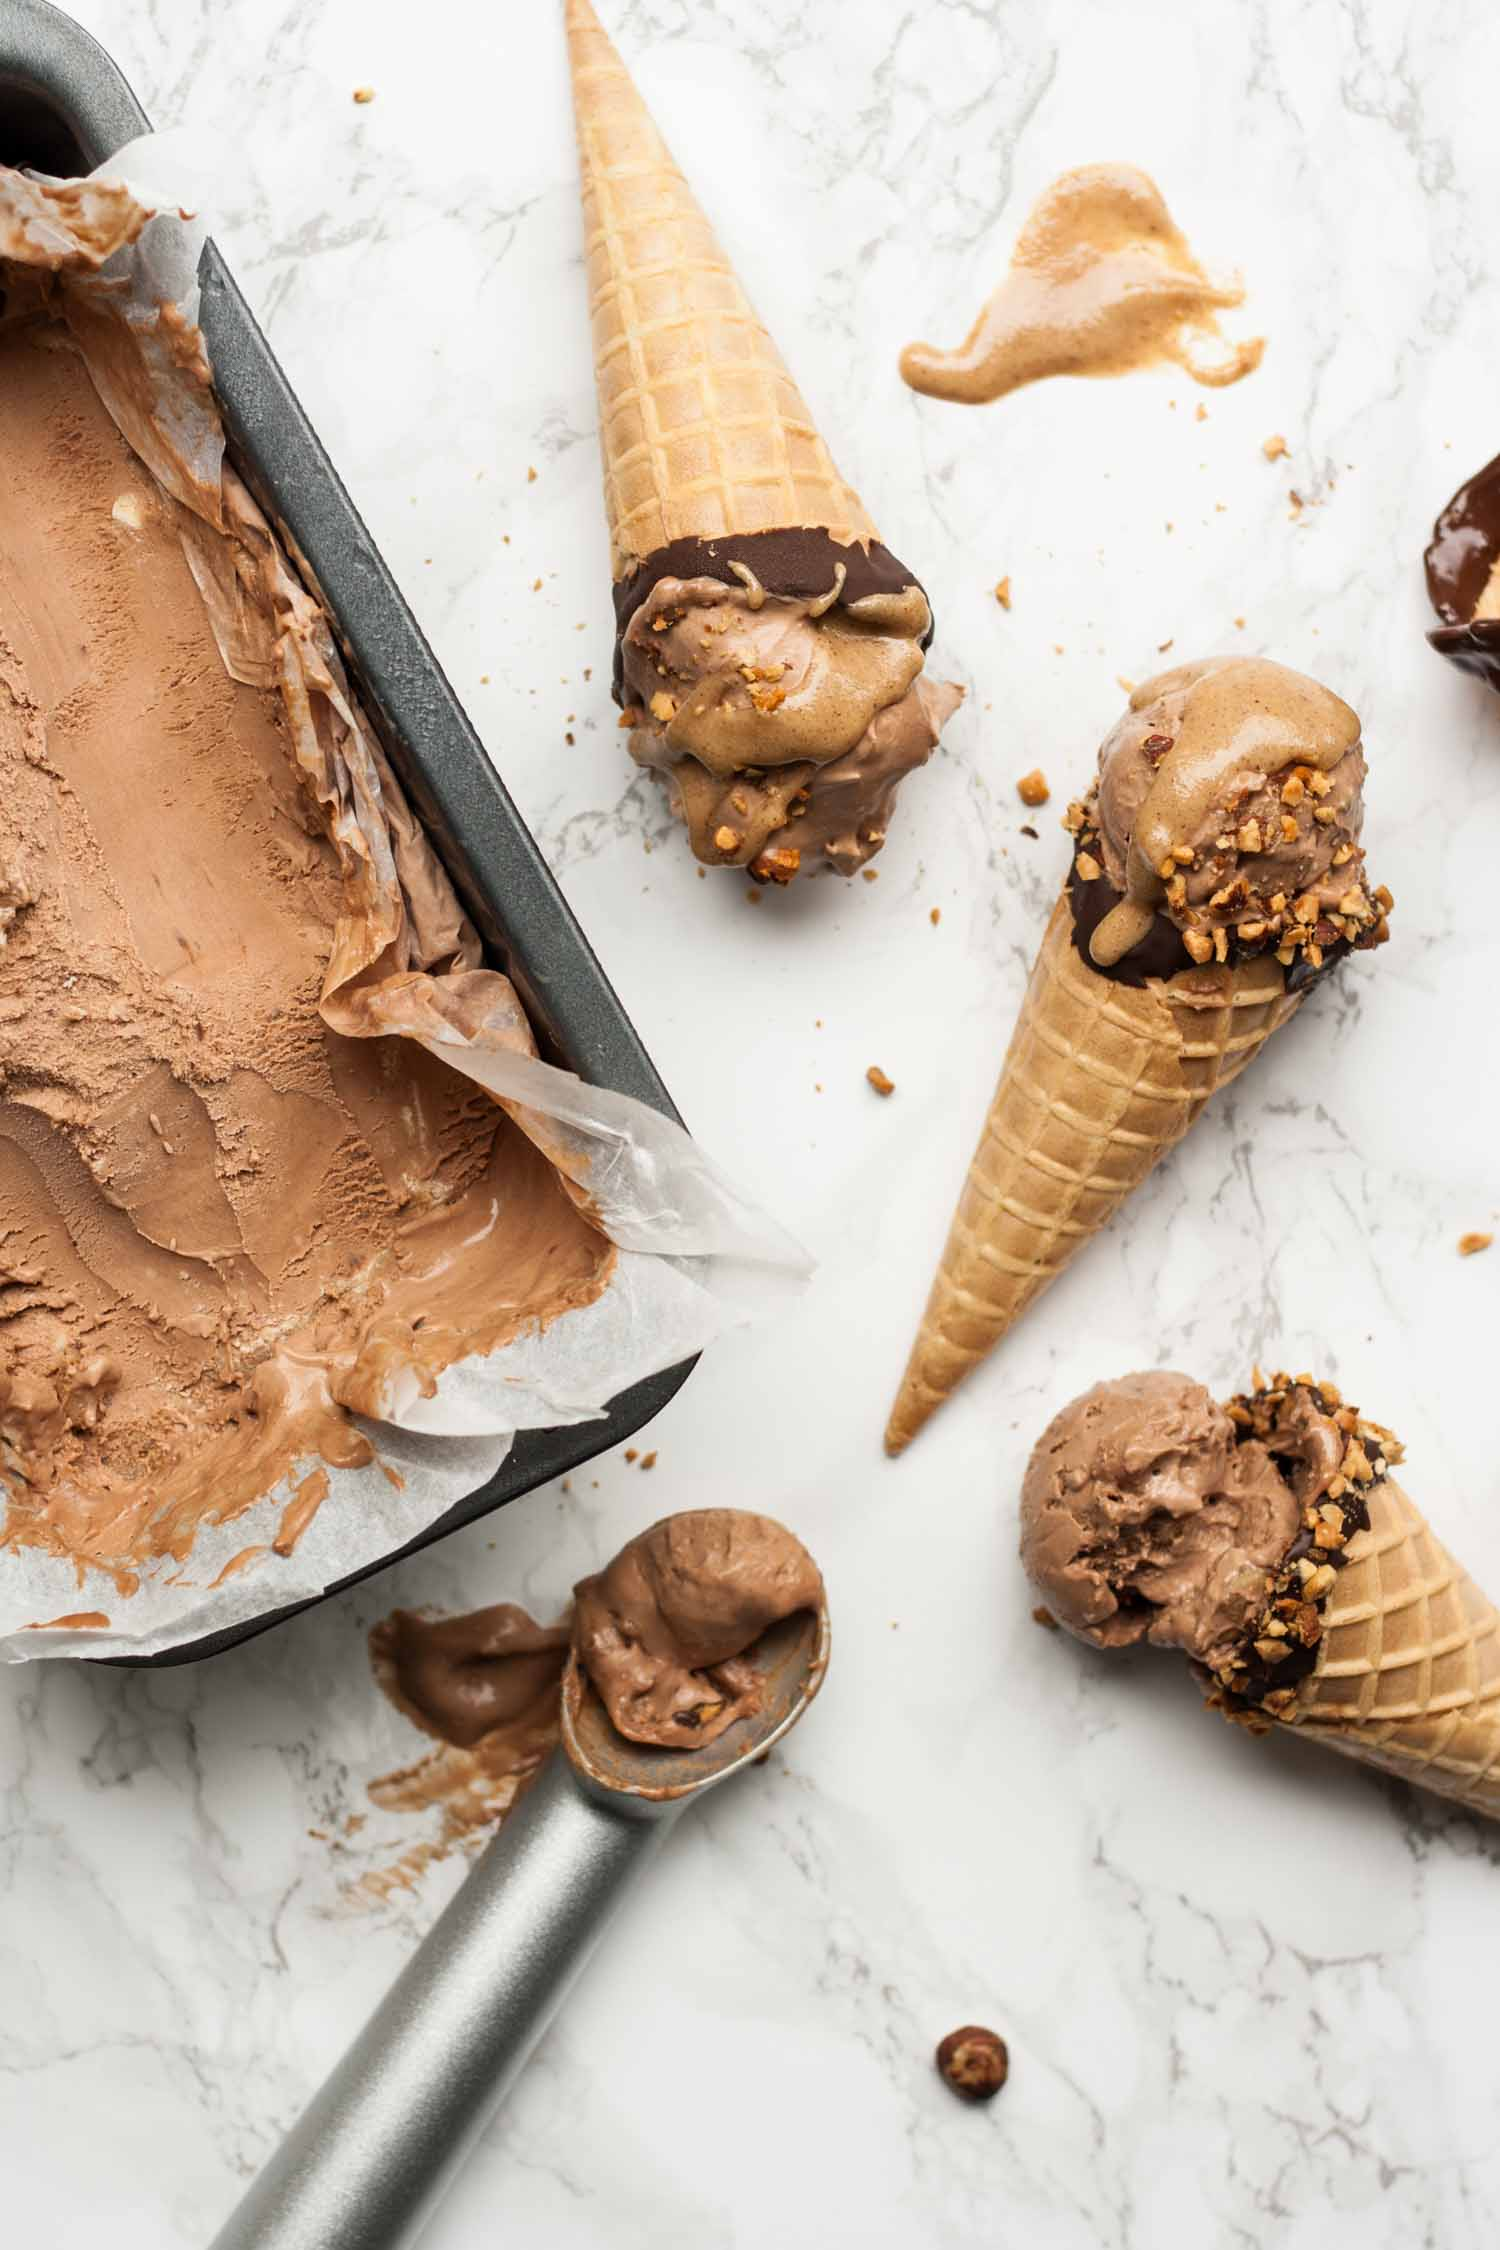 No Churn Mocha Ice Cream with Hazelnut Swirl - an easy no churn ice cream recipe packed with chocolate and coffee flavour and a hazelnut butter swirl | eatloveeats.com